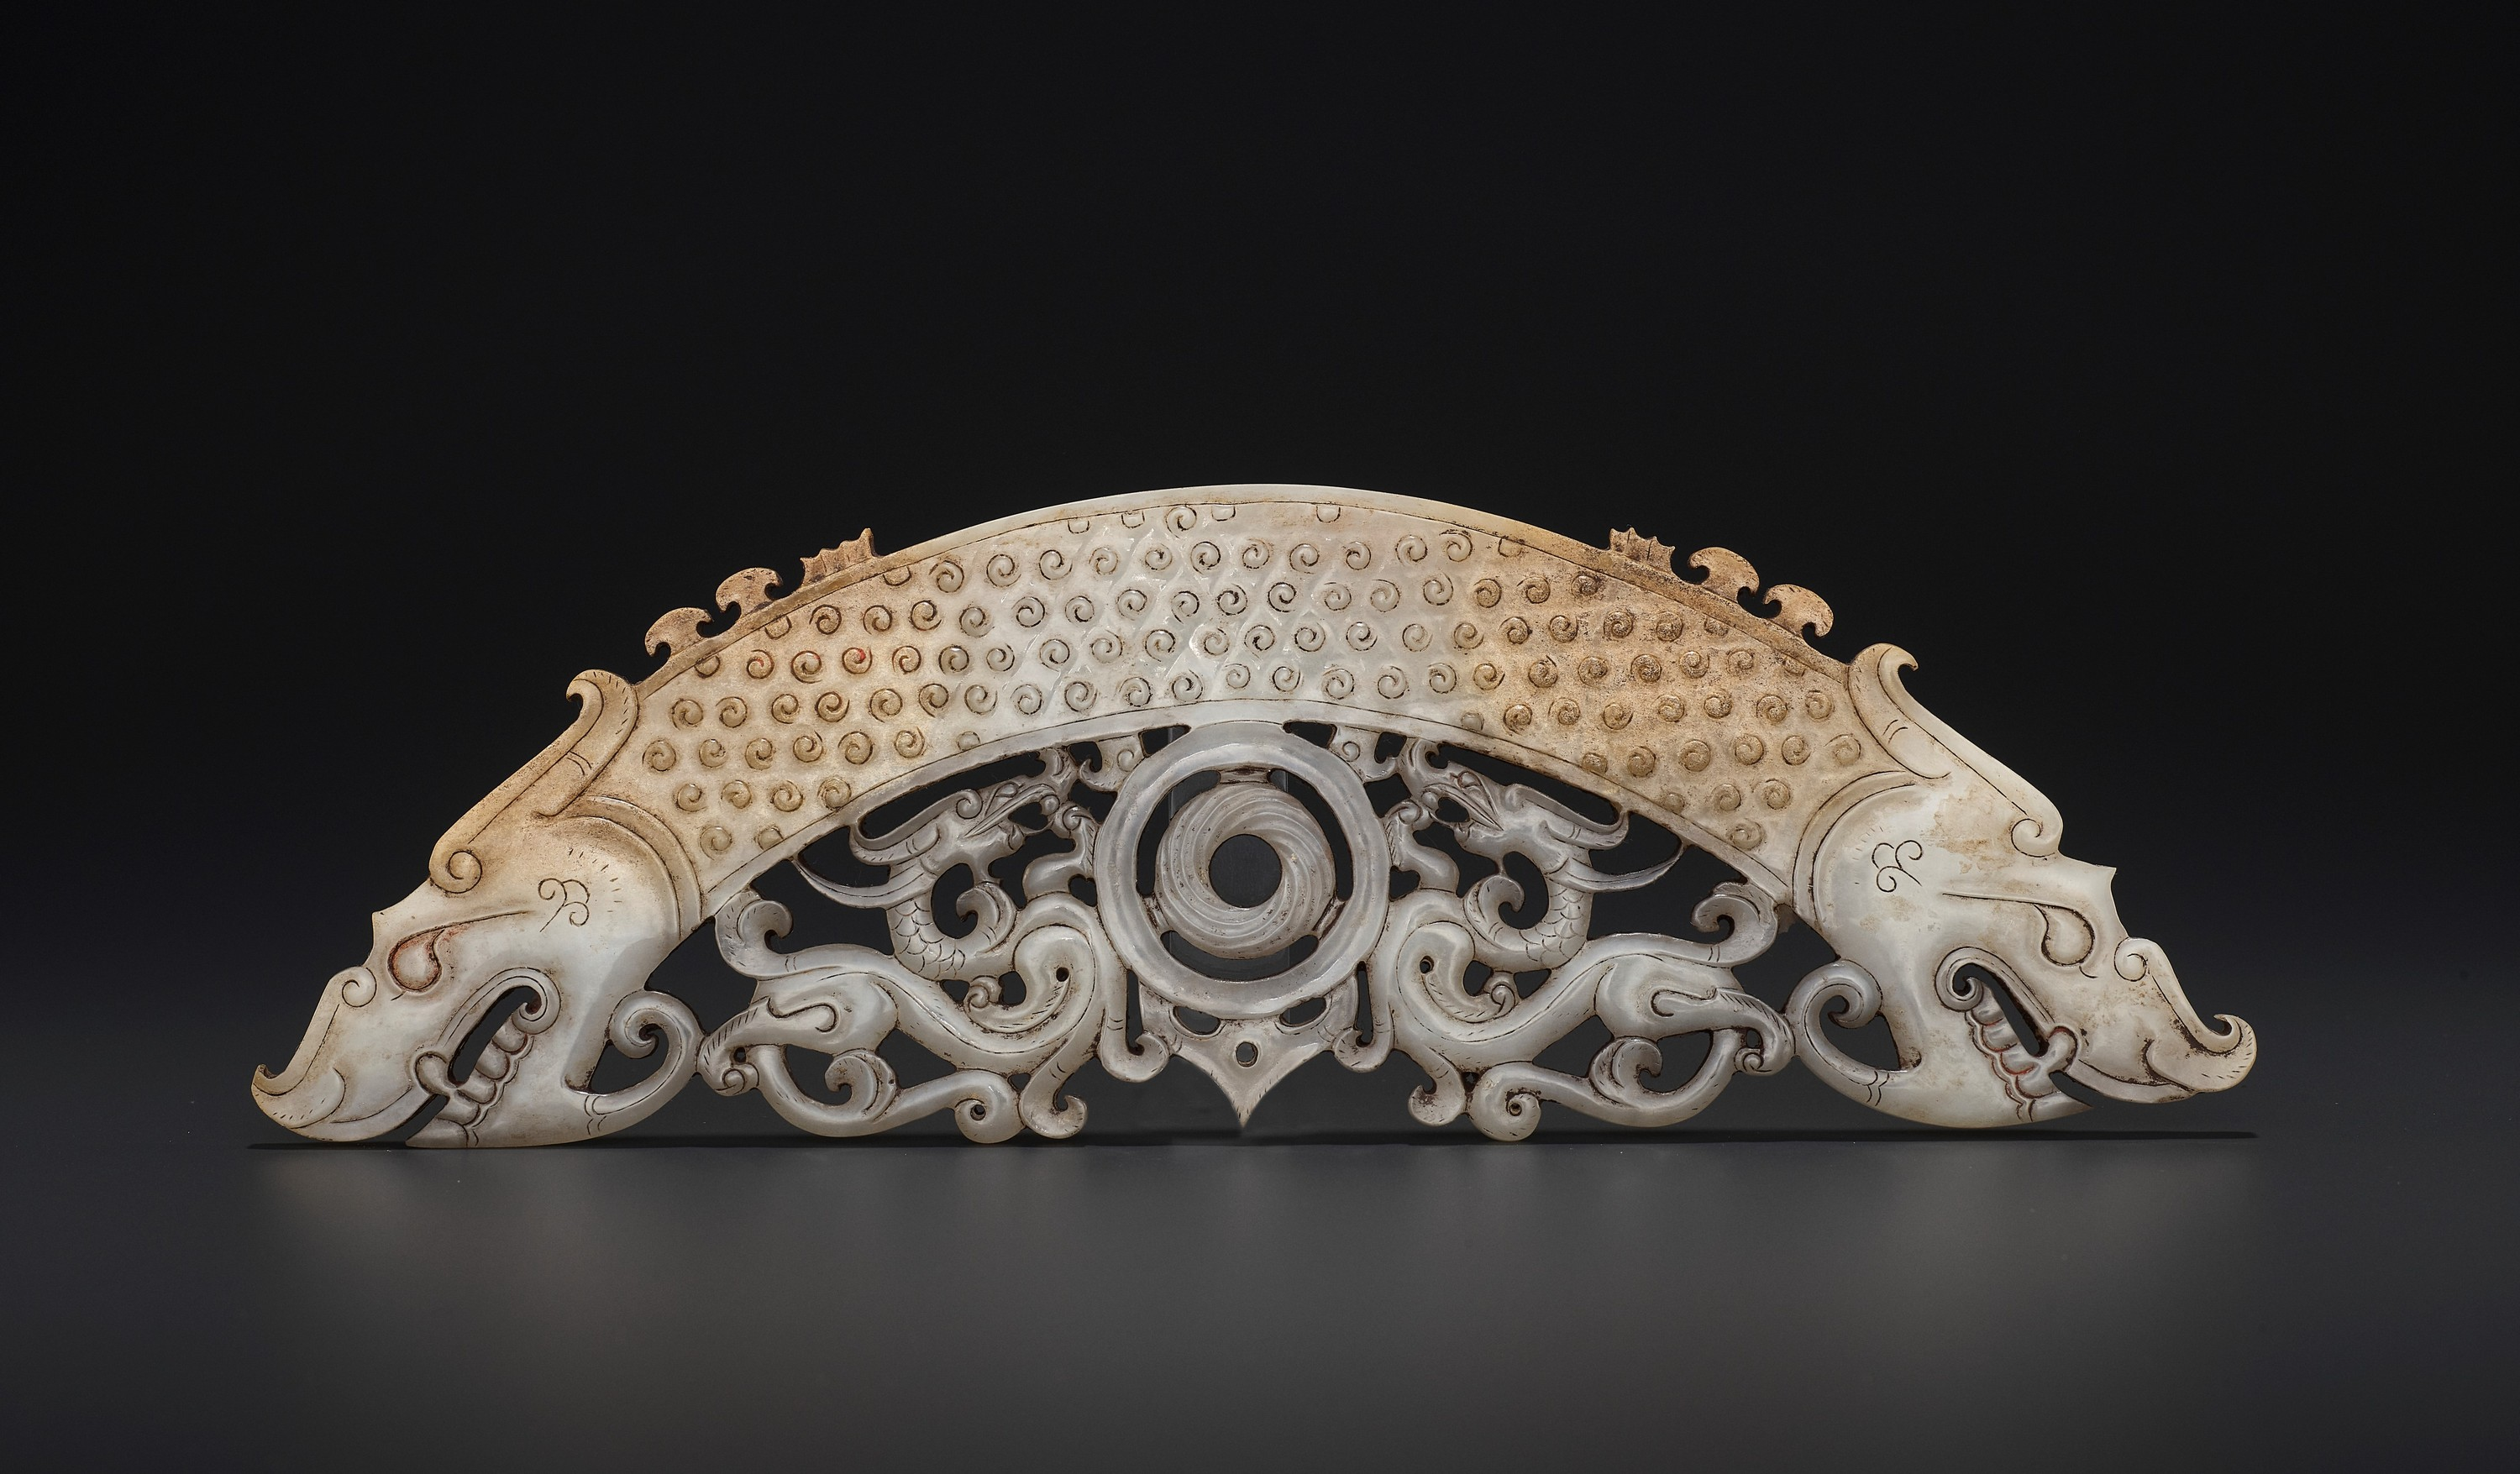 A WHITE AND RUSSET JADE 'DOUBLE DRAGON' PENDANT, HUANG, LATE EASTERN ZHOU TO HAN